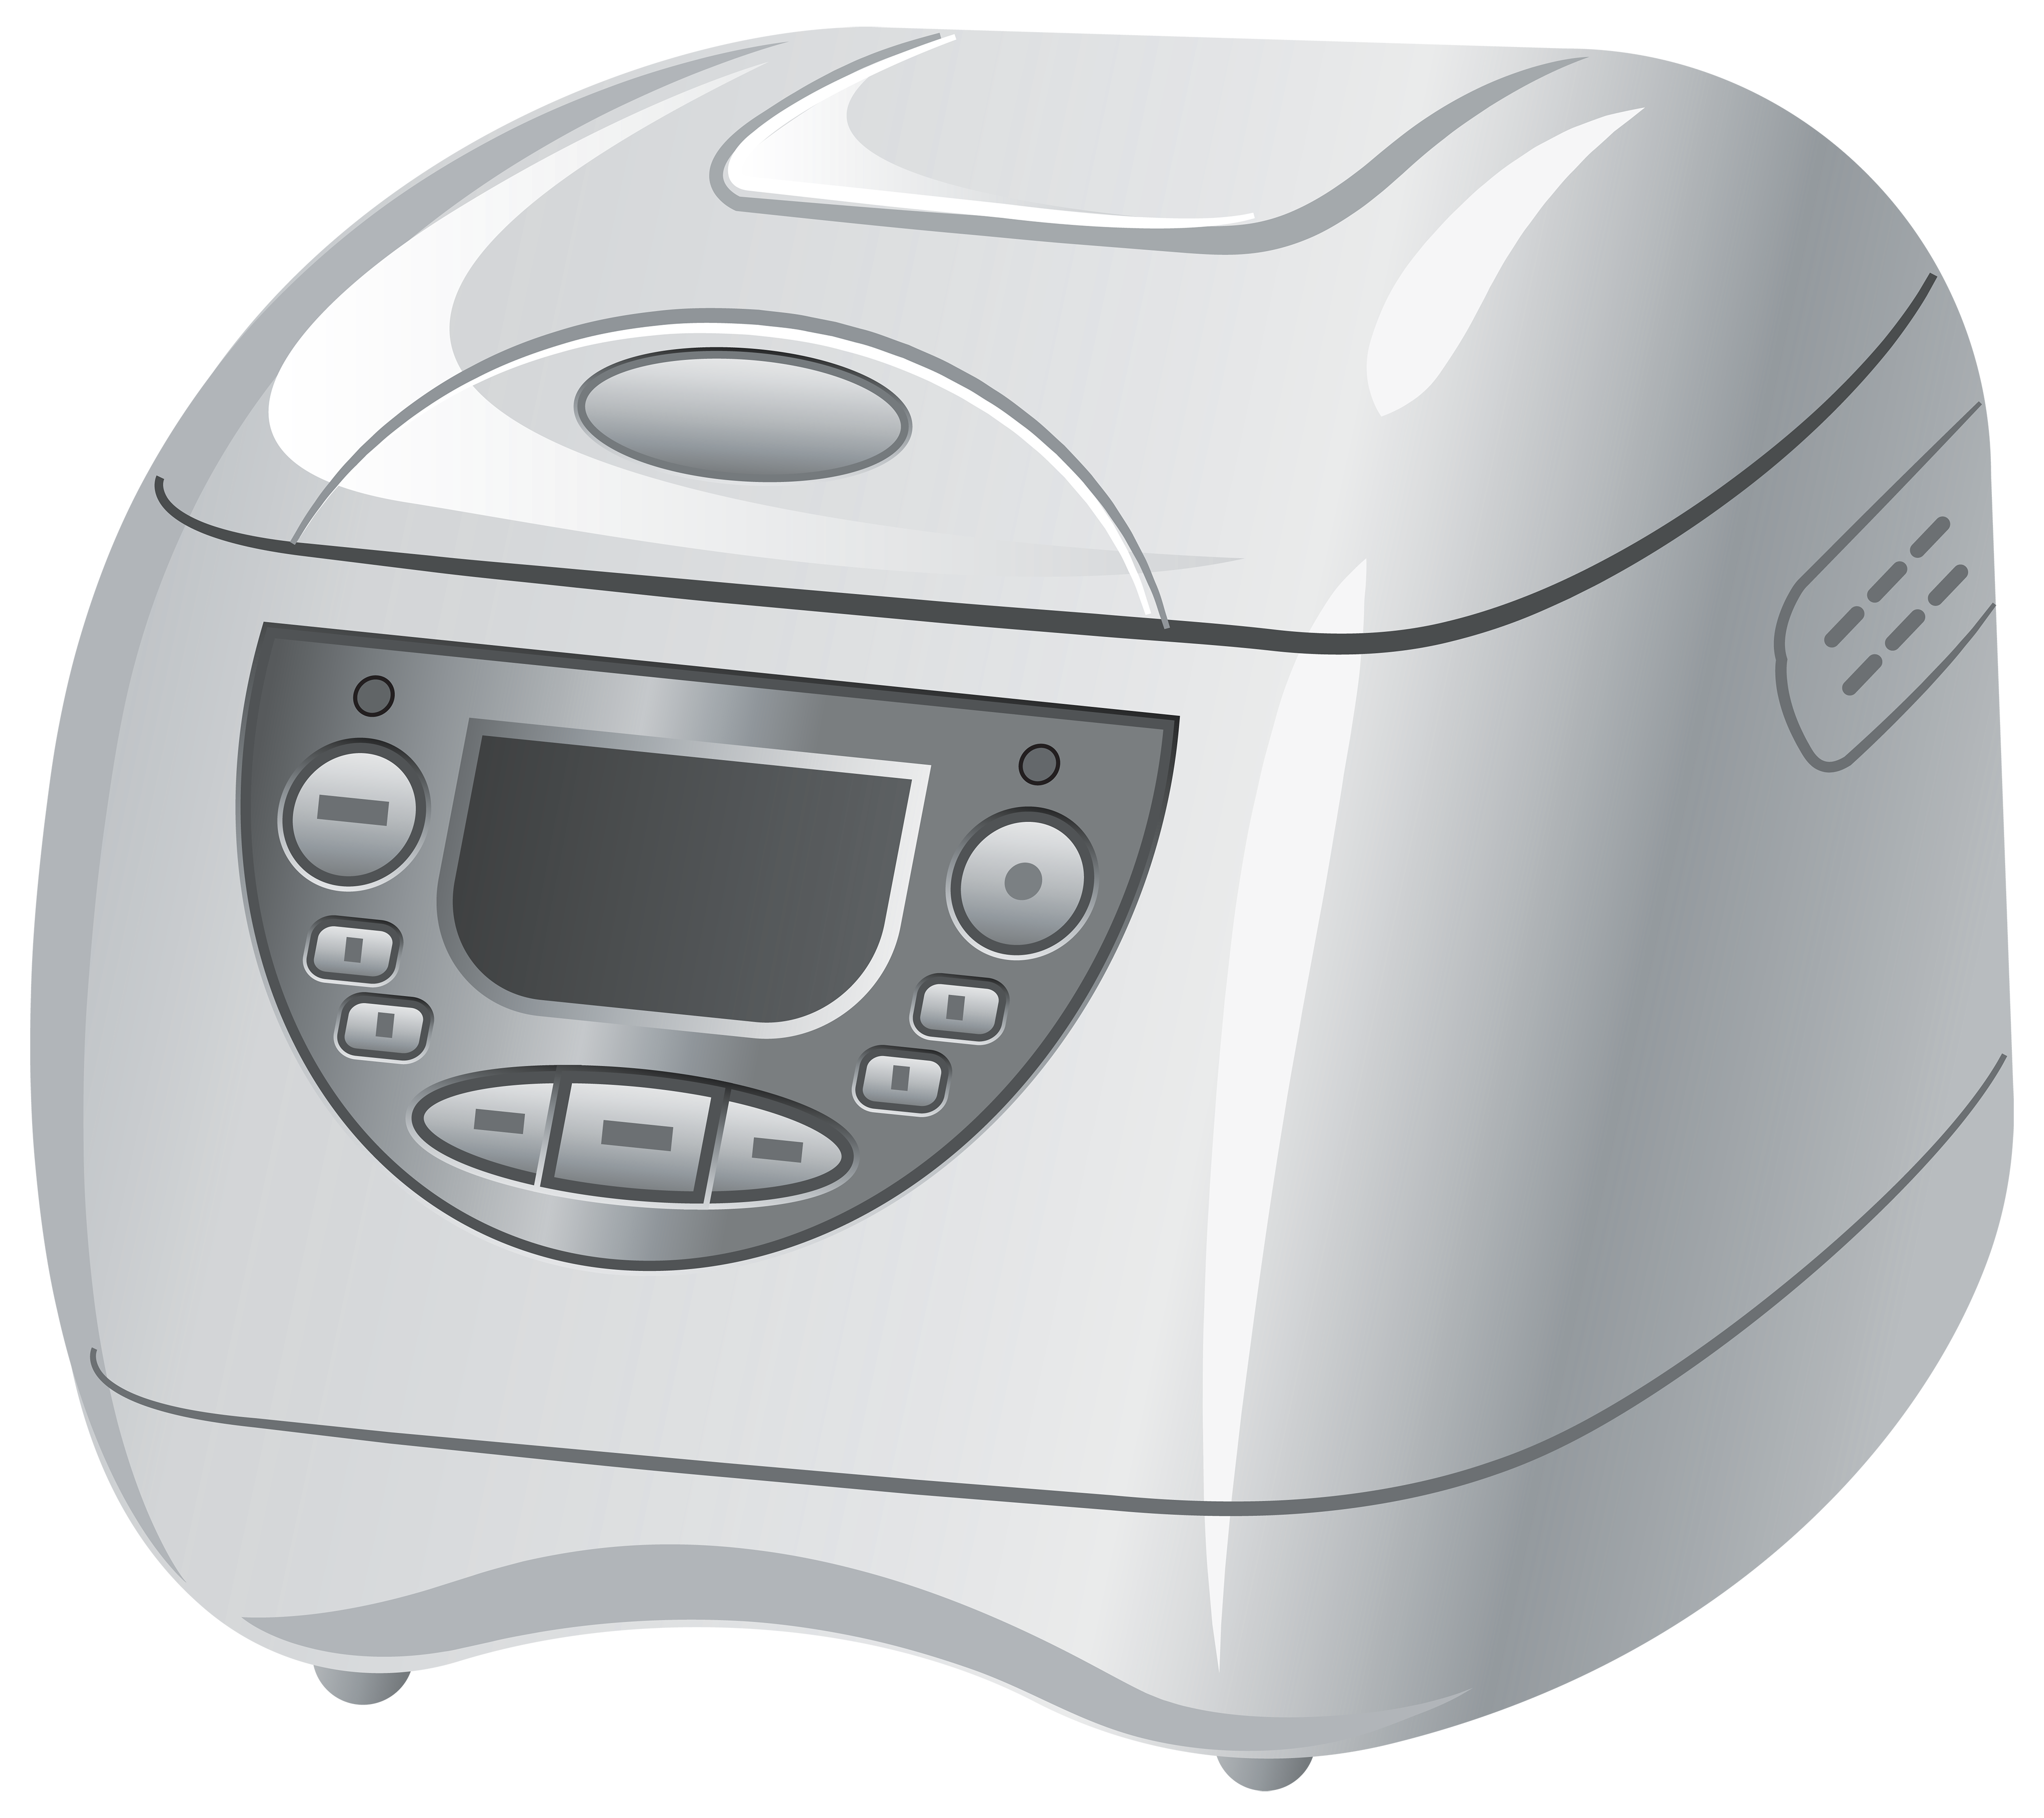 Clipart deep fryer jpg transparent Deep Fryer PNG Clipart - Best WEB Clipart jpg transparent